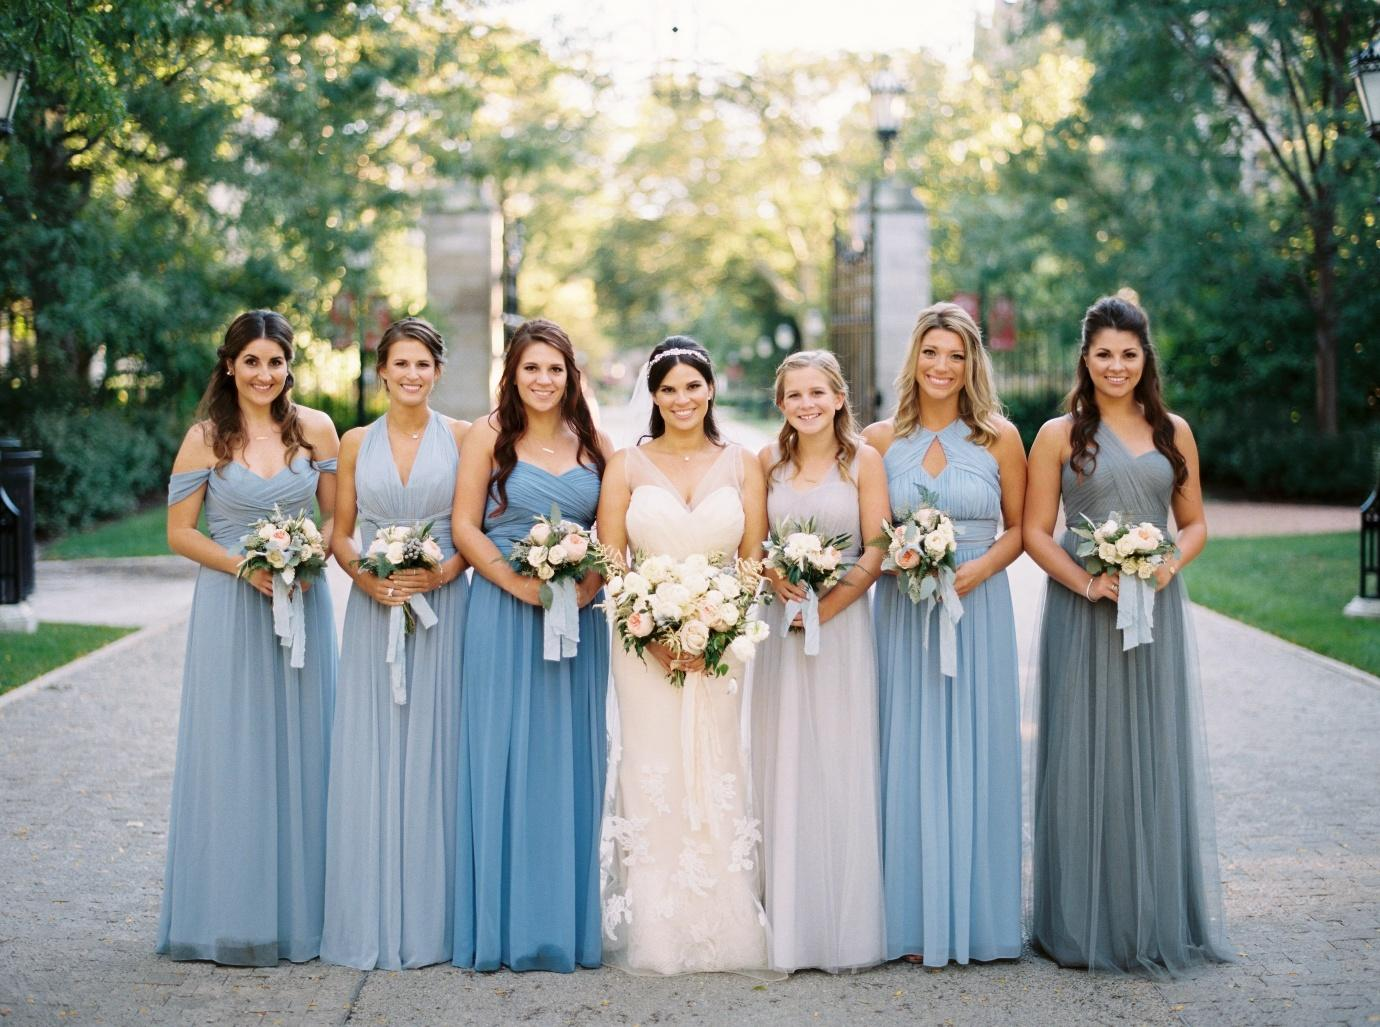 Opt For Bridesmaid Dresses To Show Your Unique Style